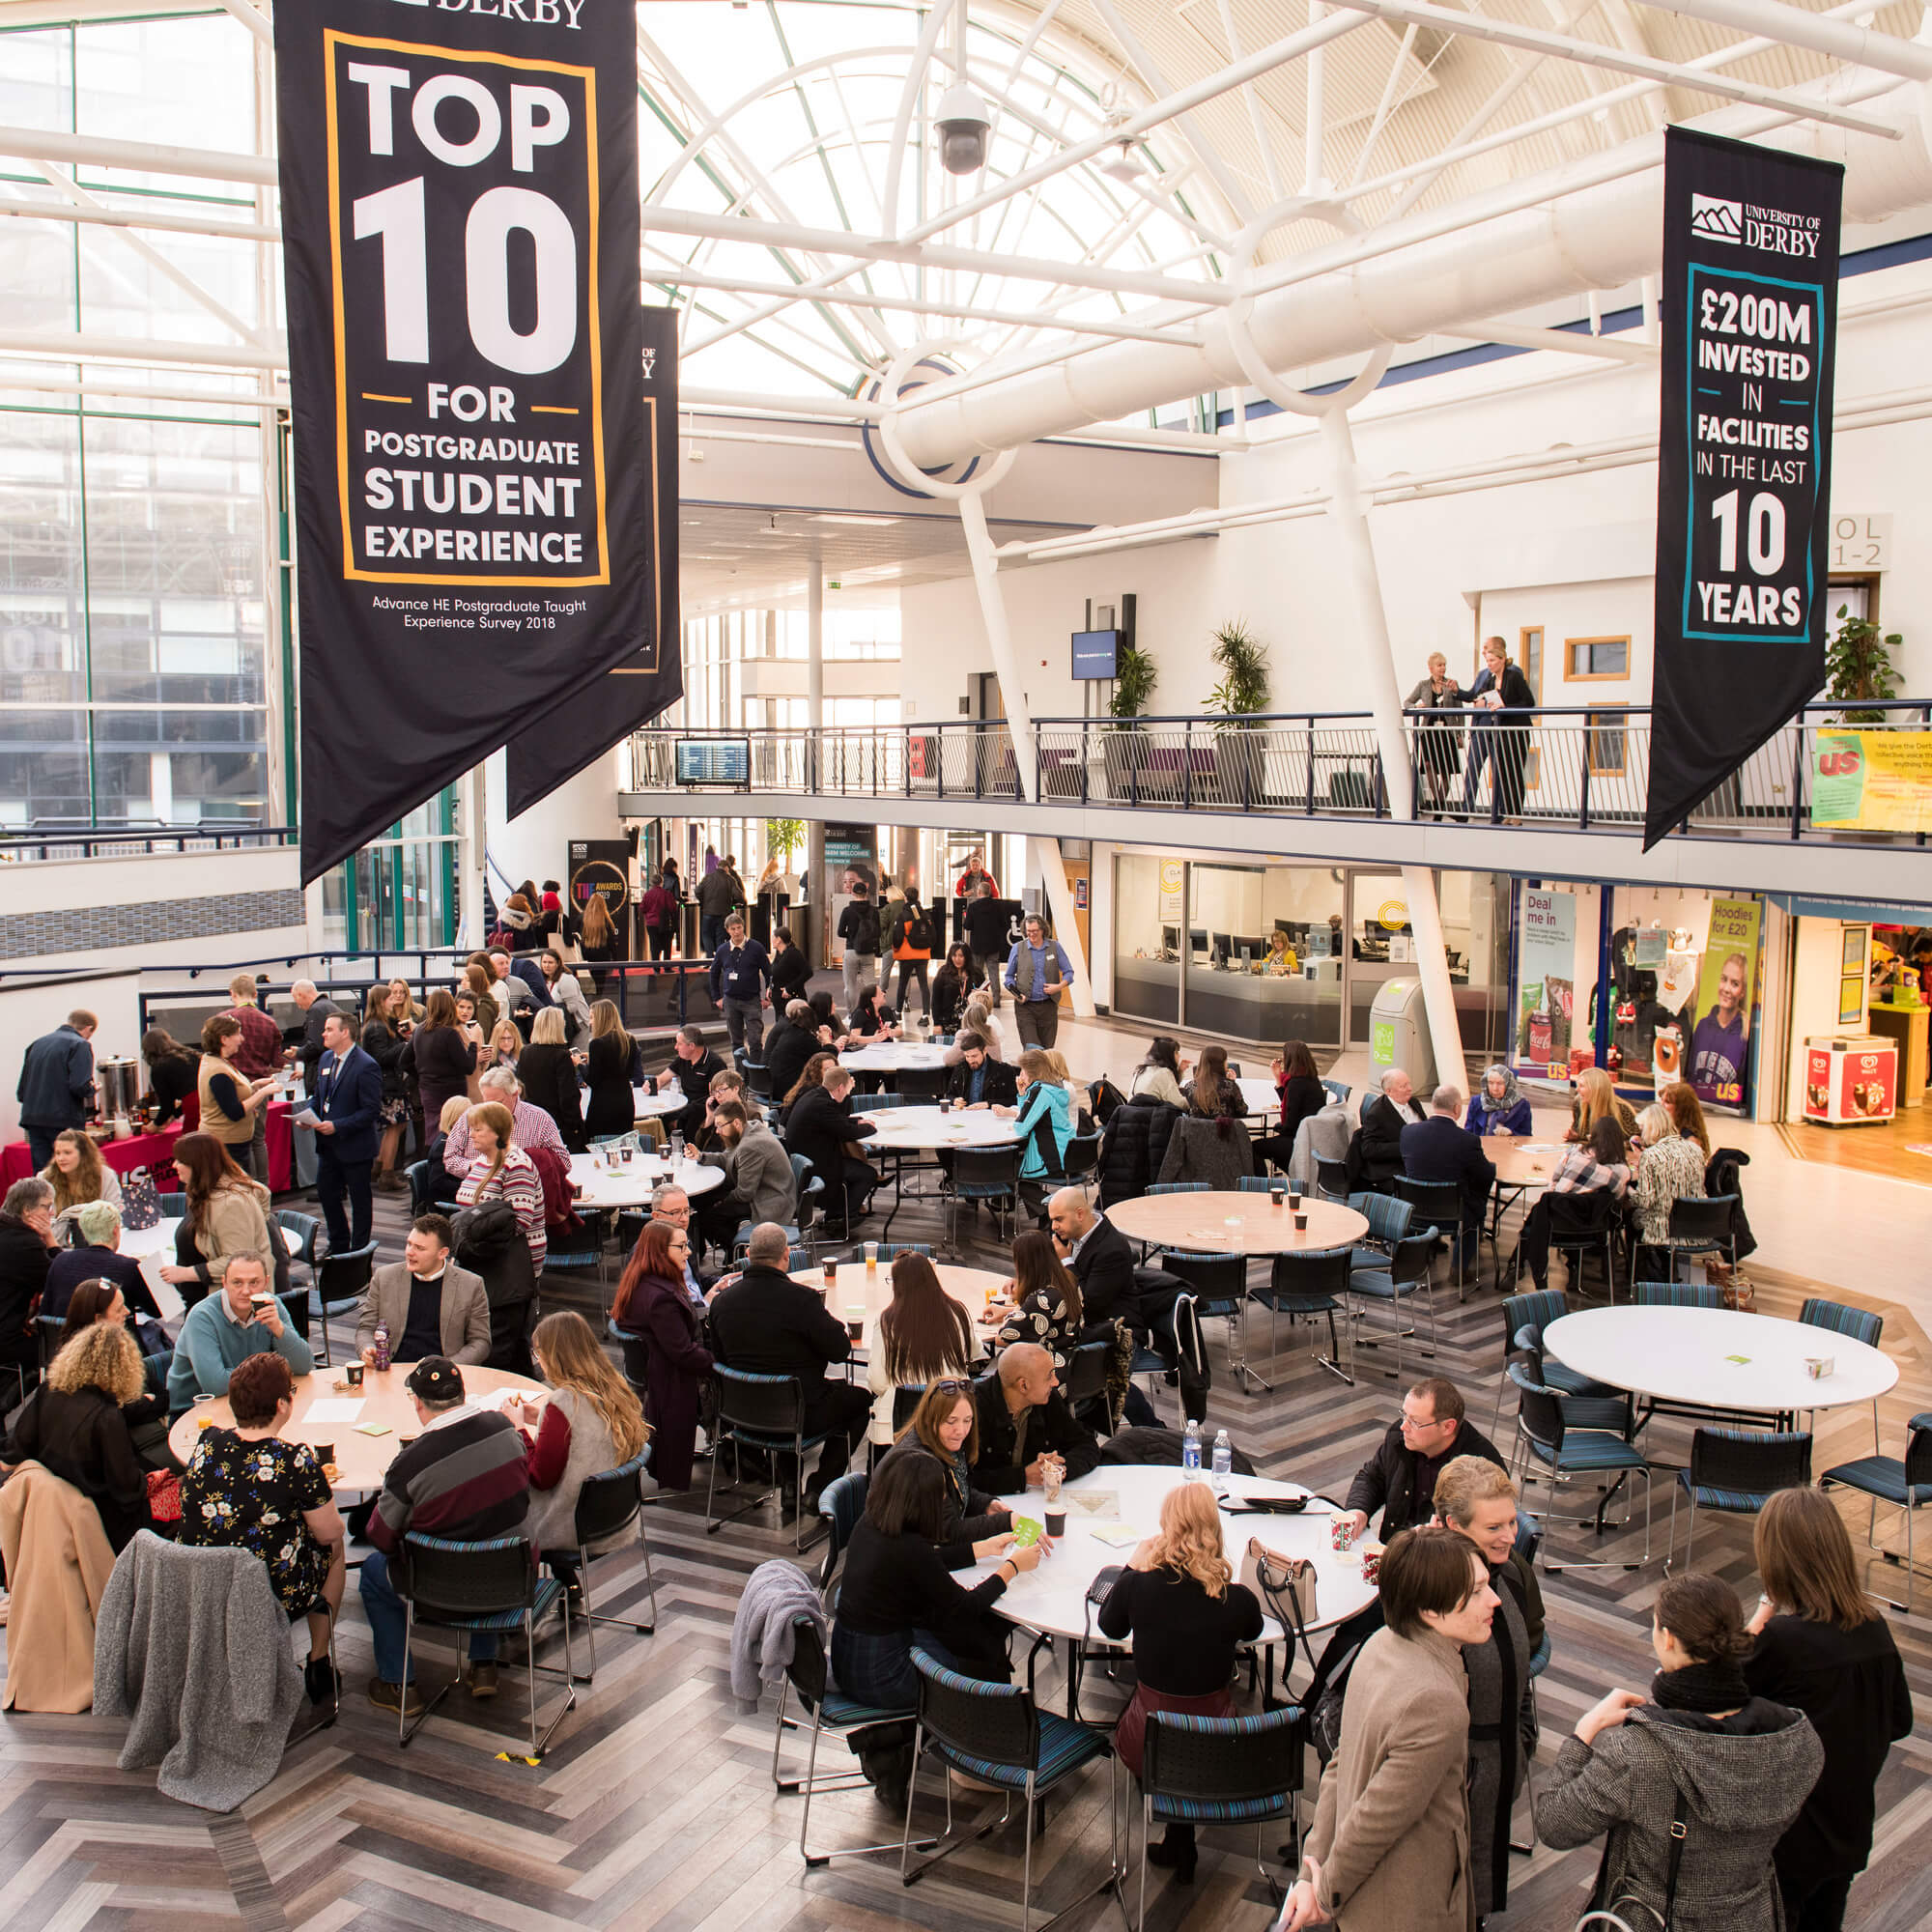 People Networking event at universoty of Derby